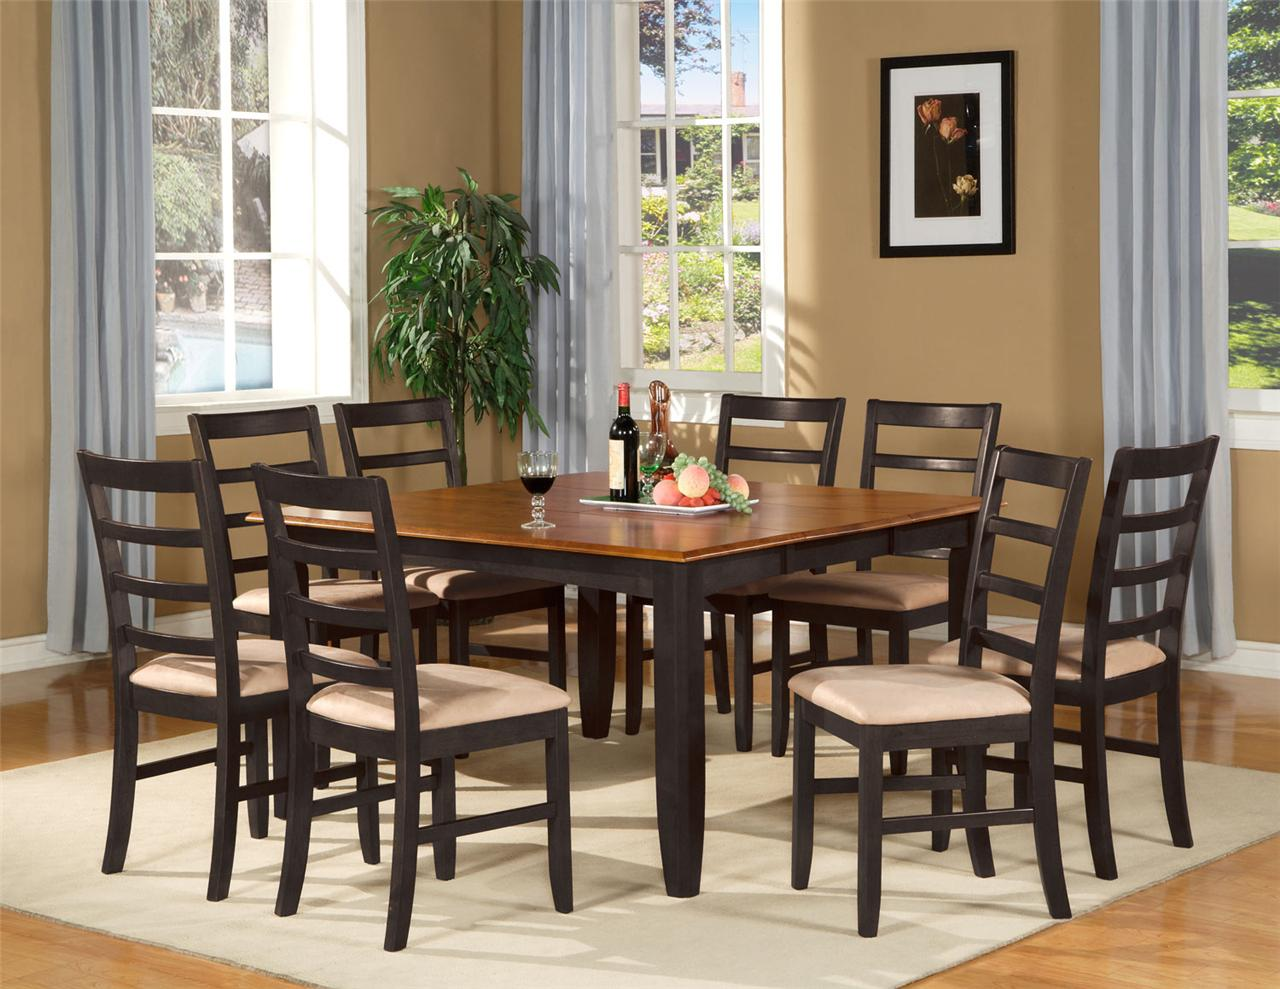 Dining Room Table Sets For 8